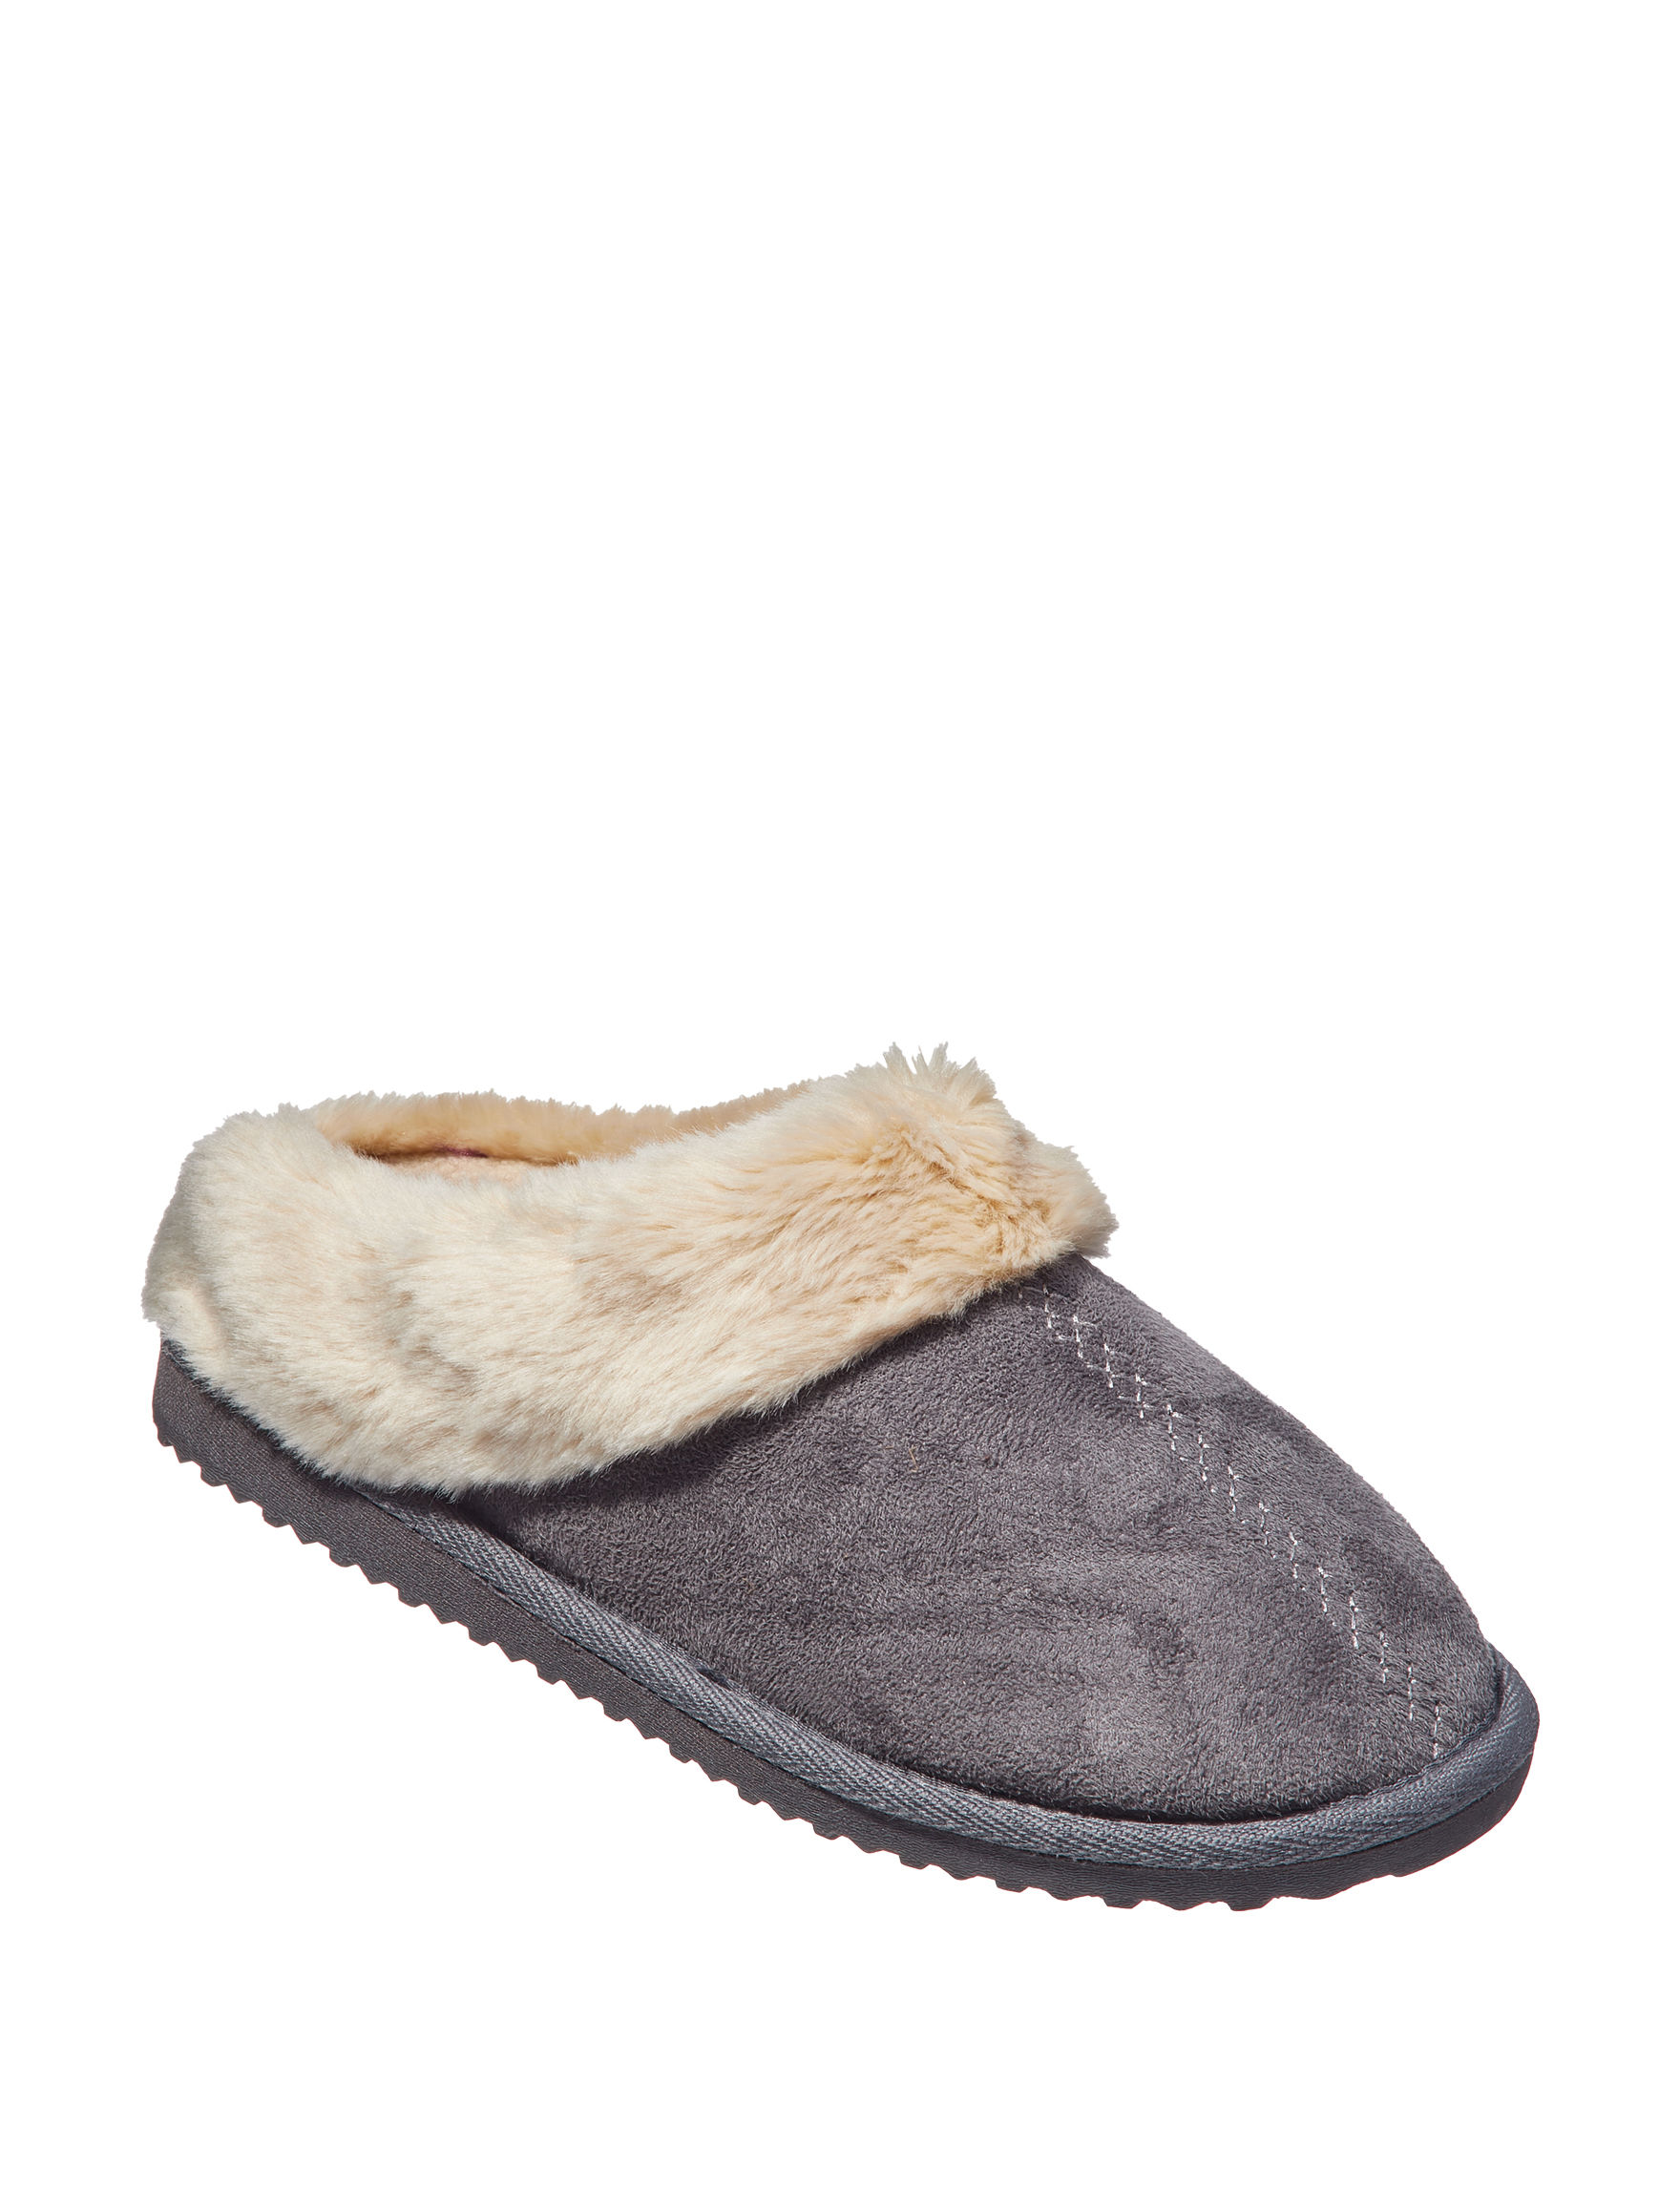 Sharper Image Grey Slipper Shoes